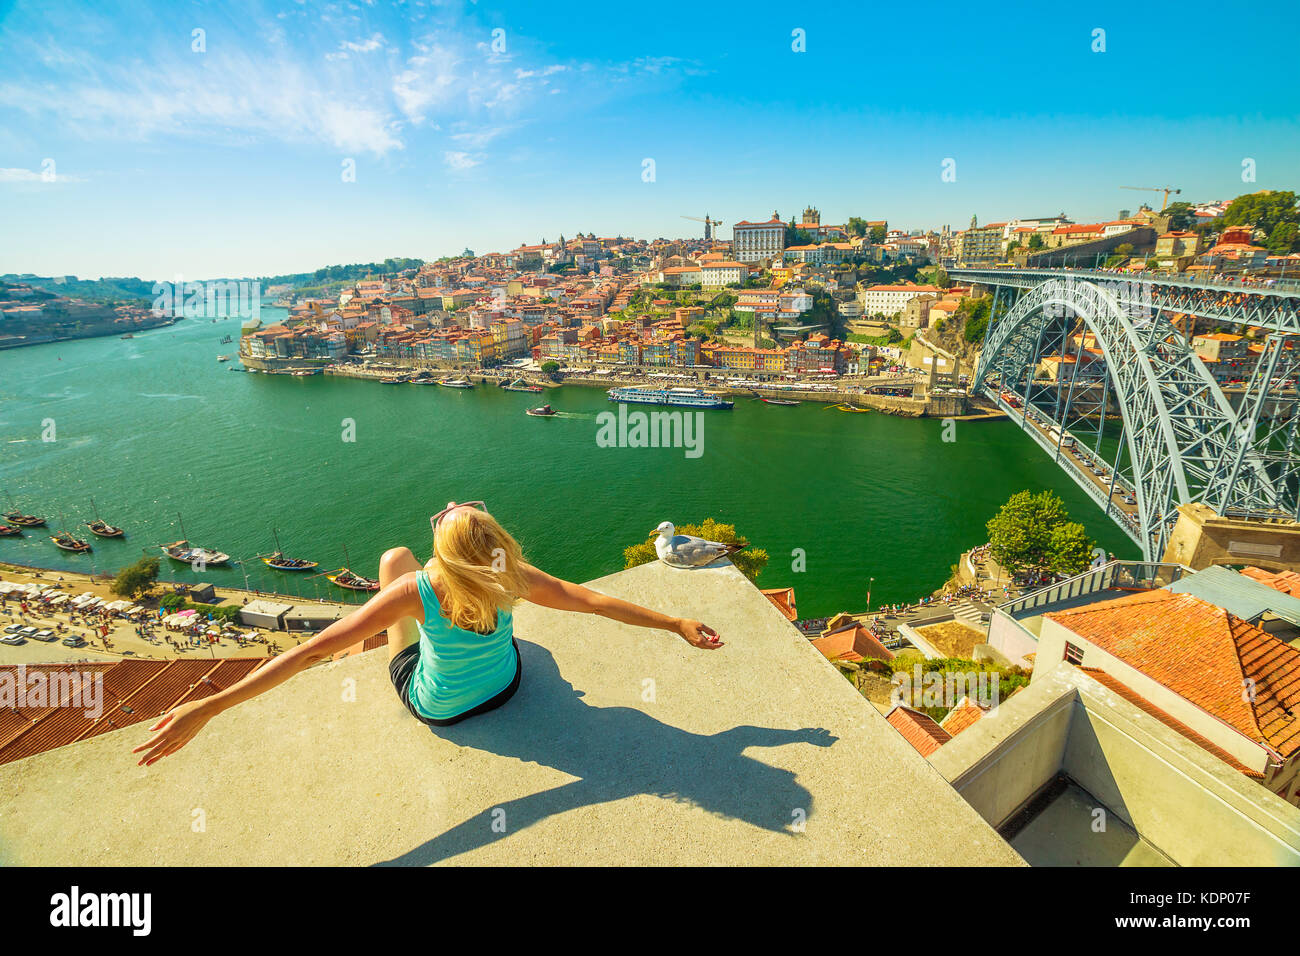 Freedom woman at Douro River - Stock Image